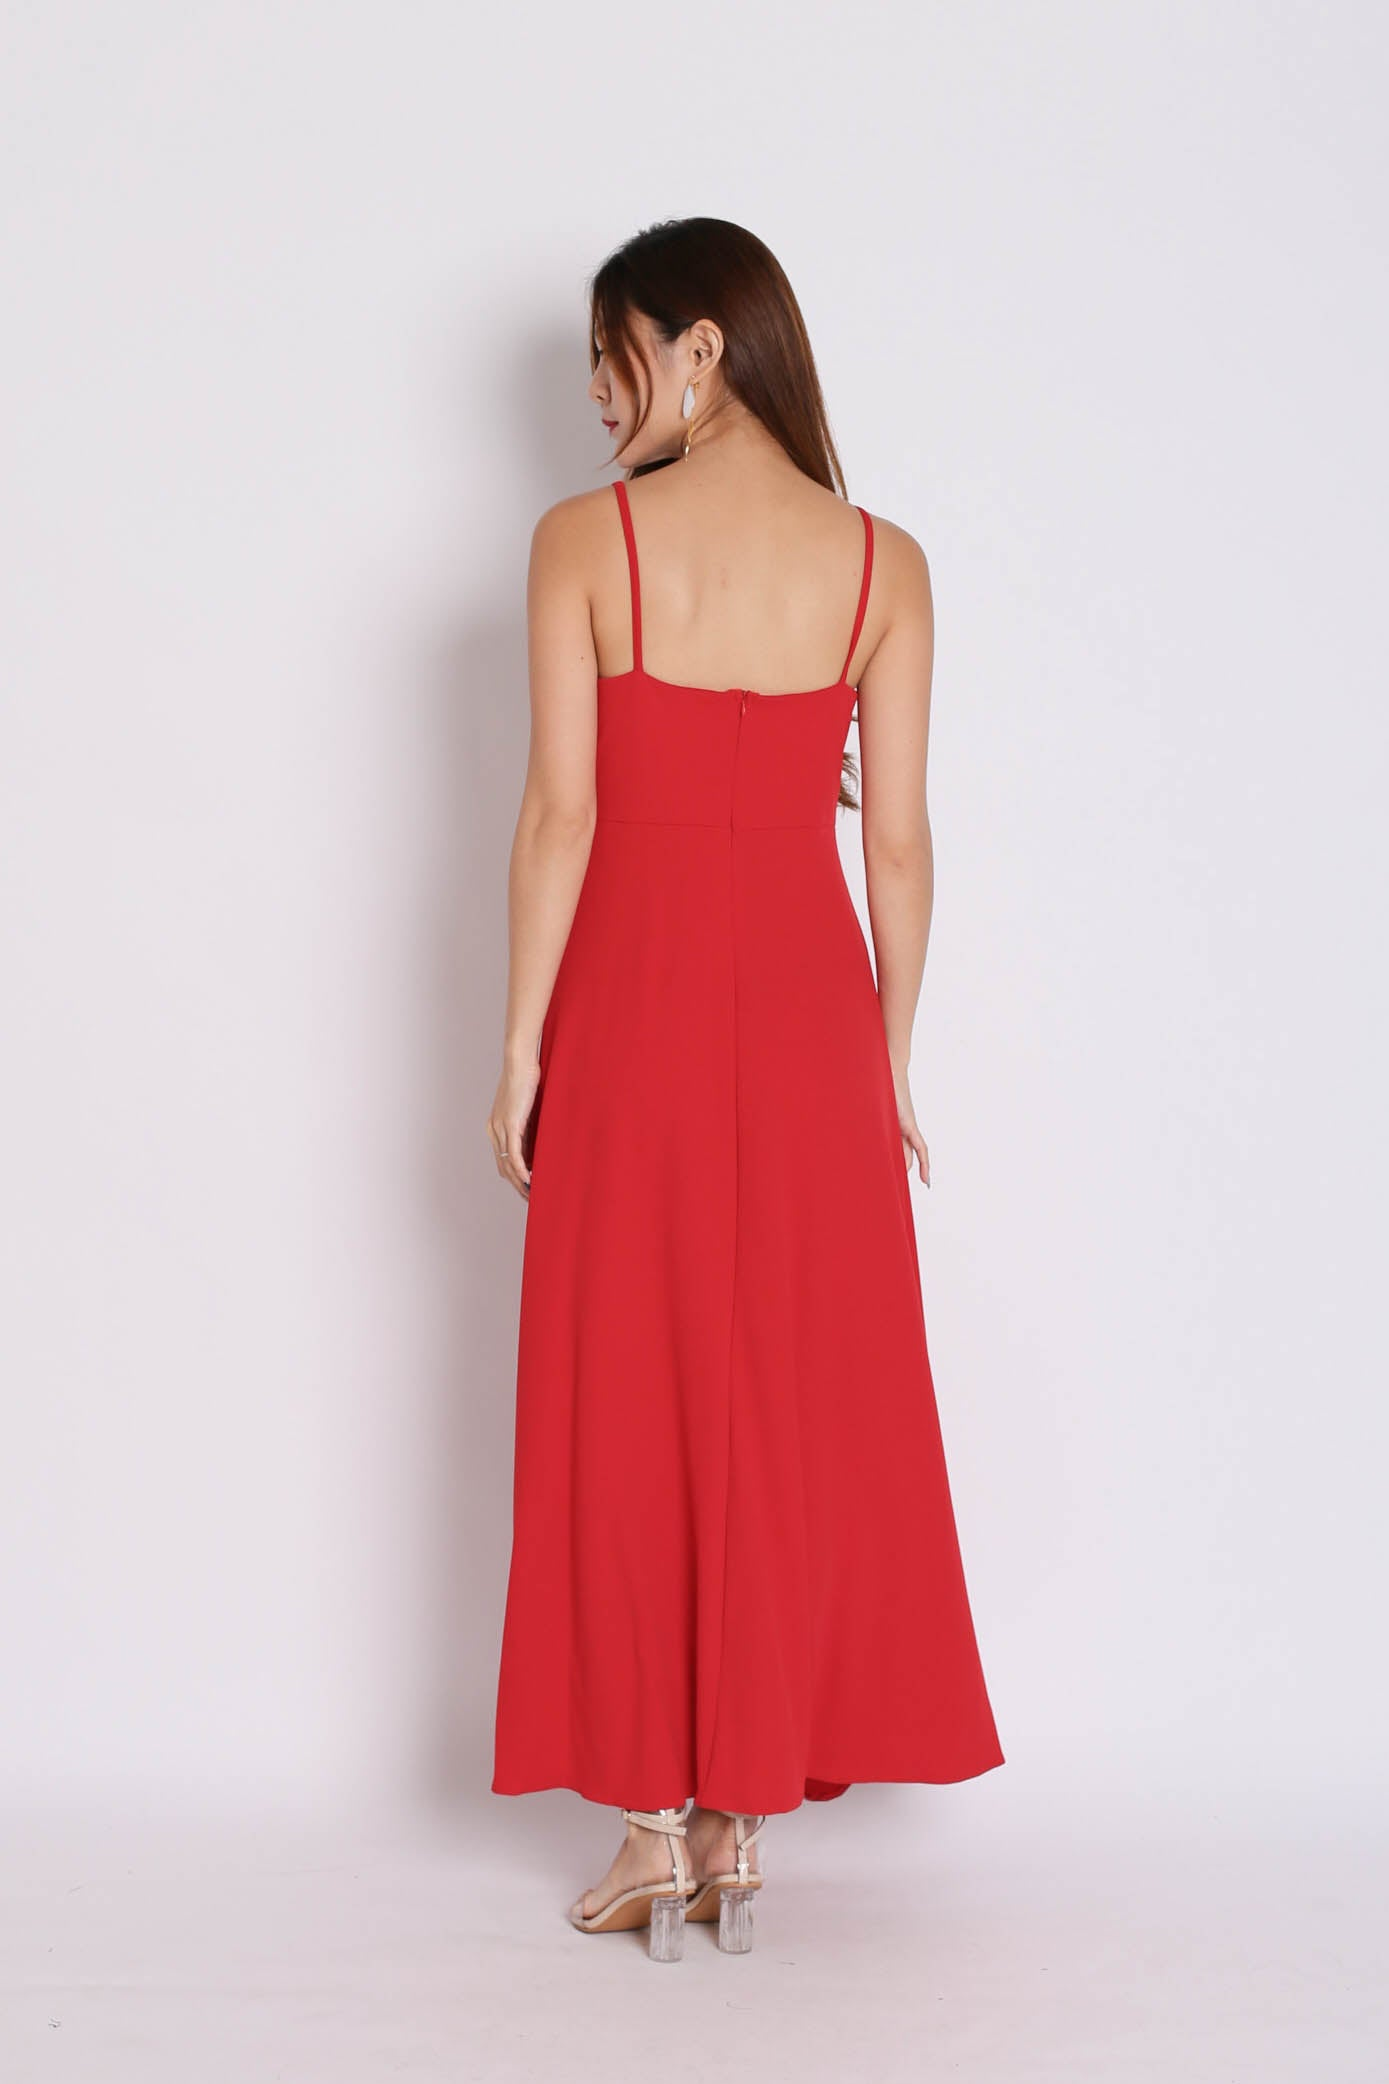 DIVA RUFFLES DRAPE DRESS IN RED